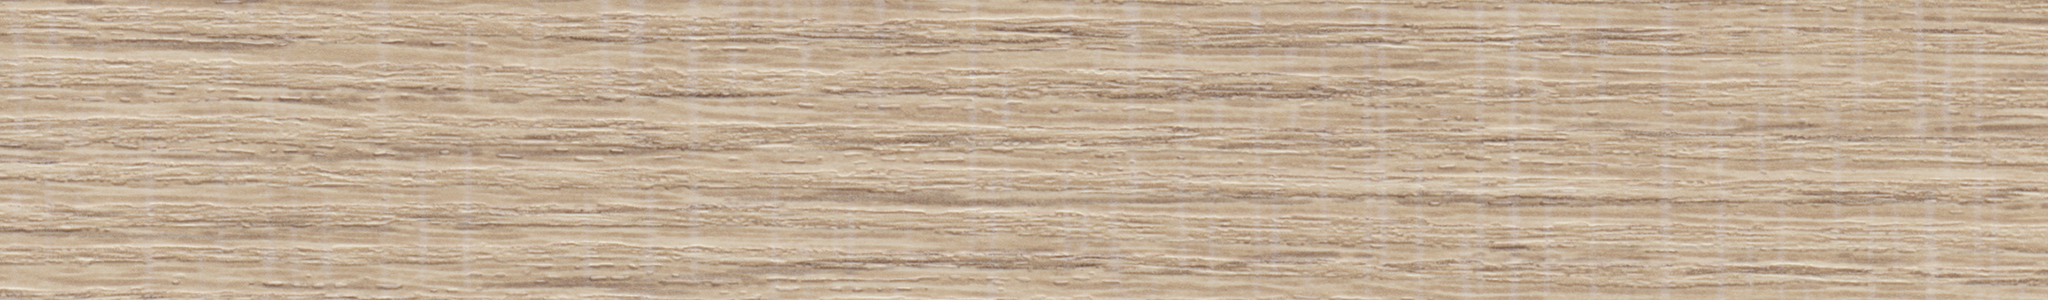 HD 241145 ABS Edge Oak Pore